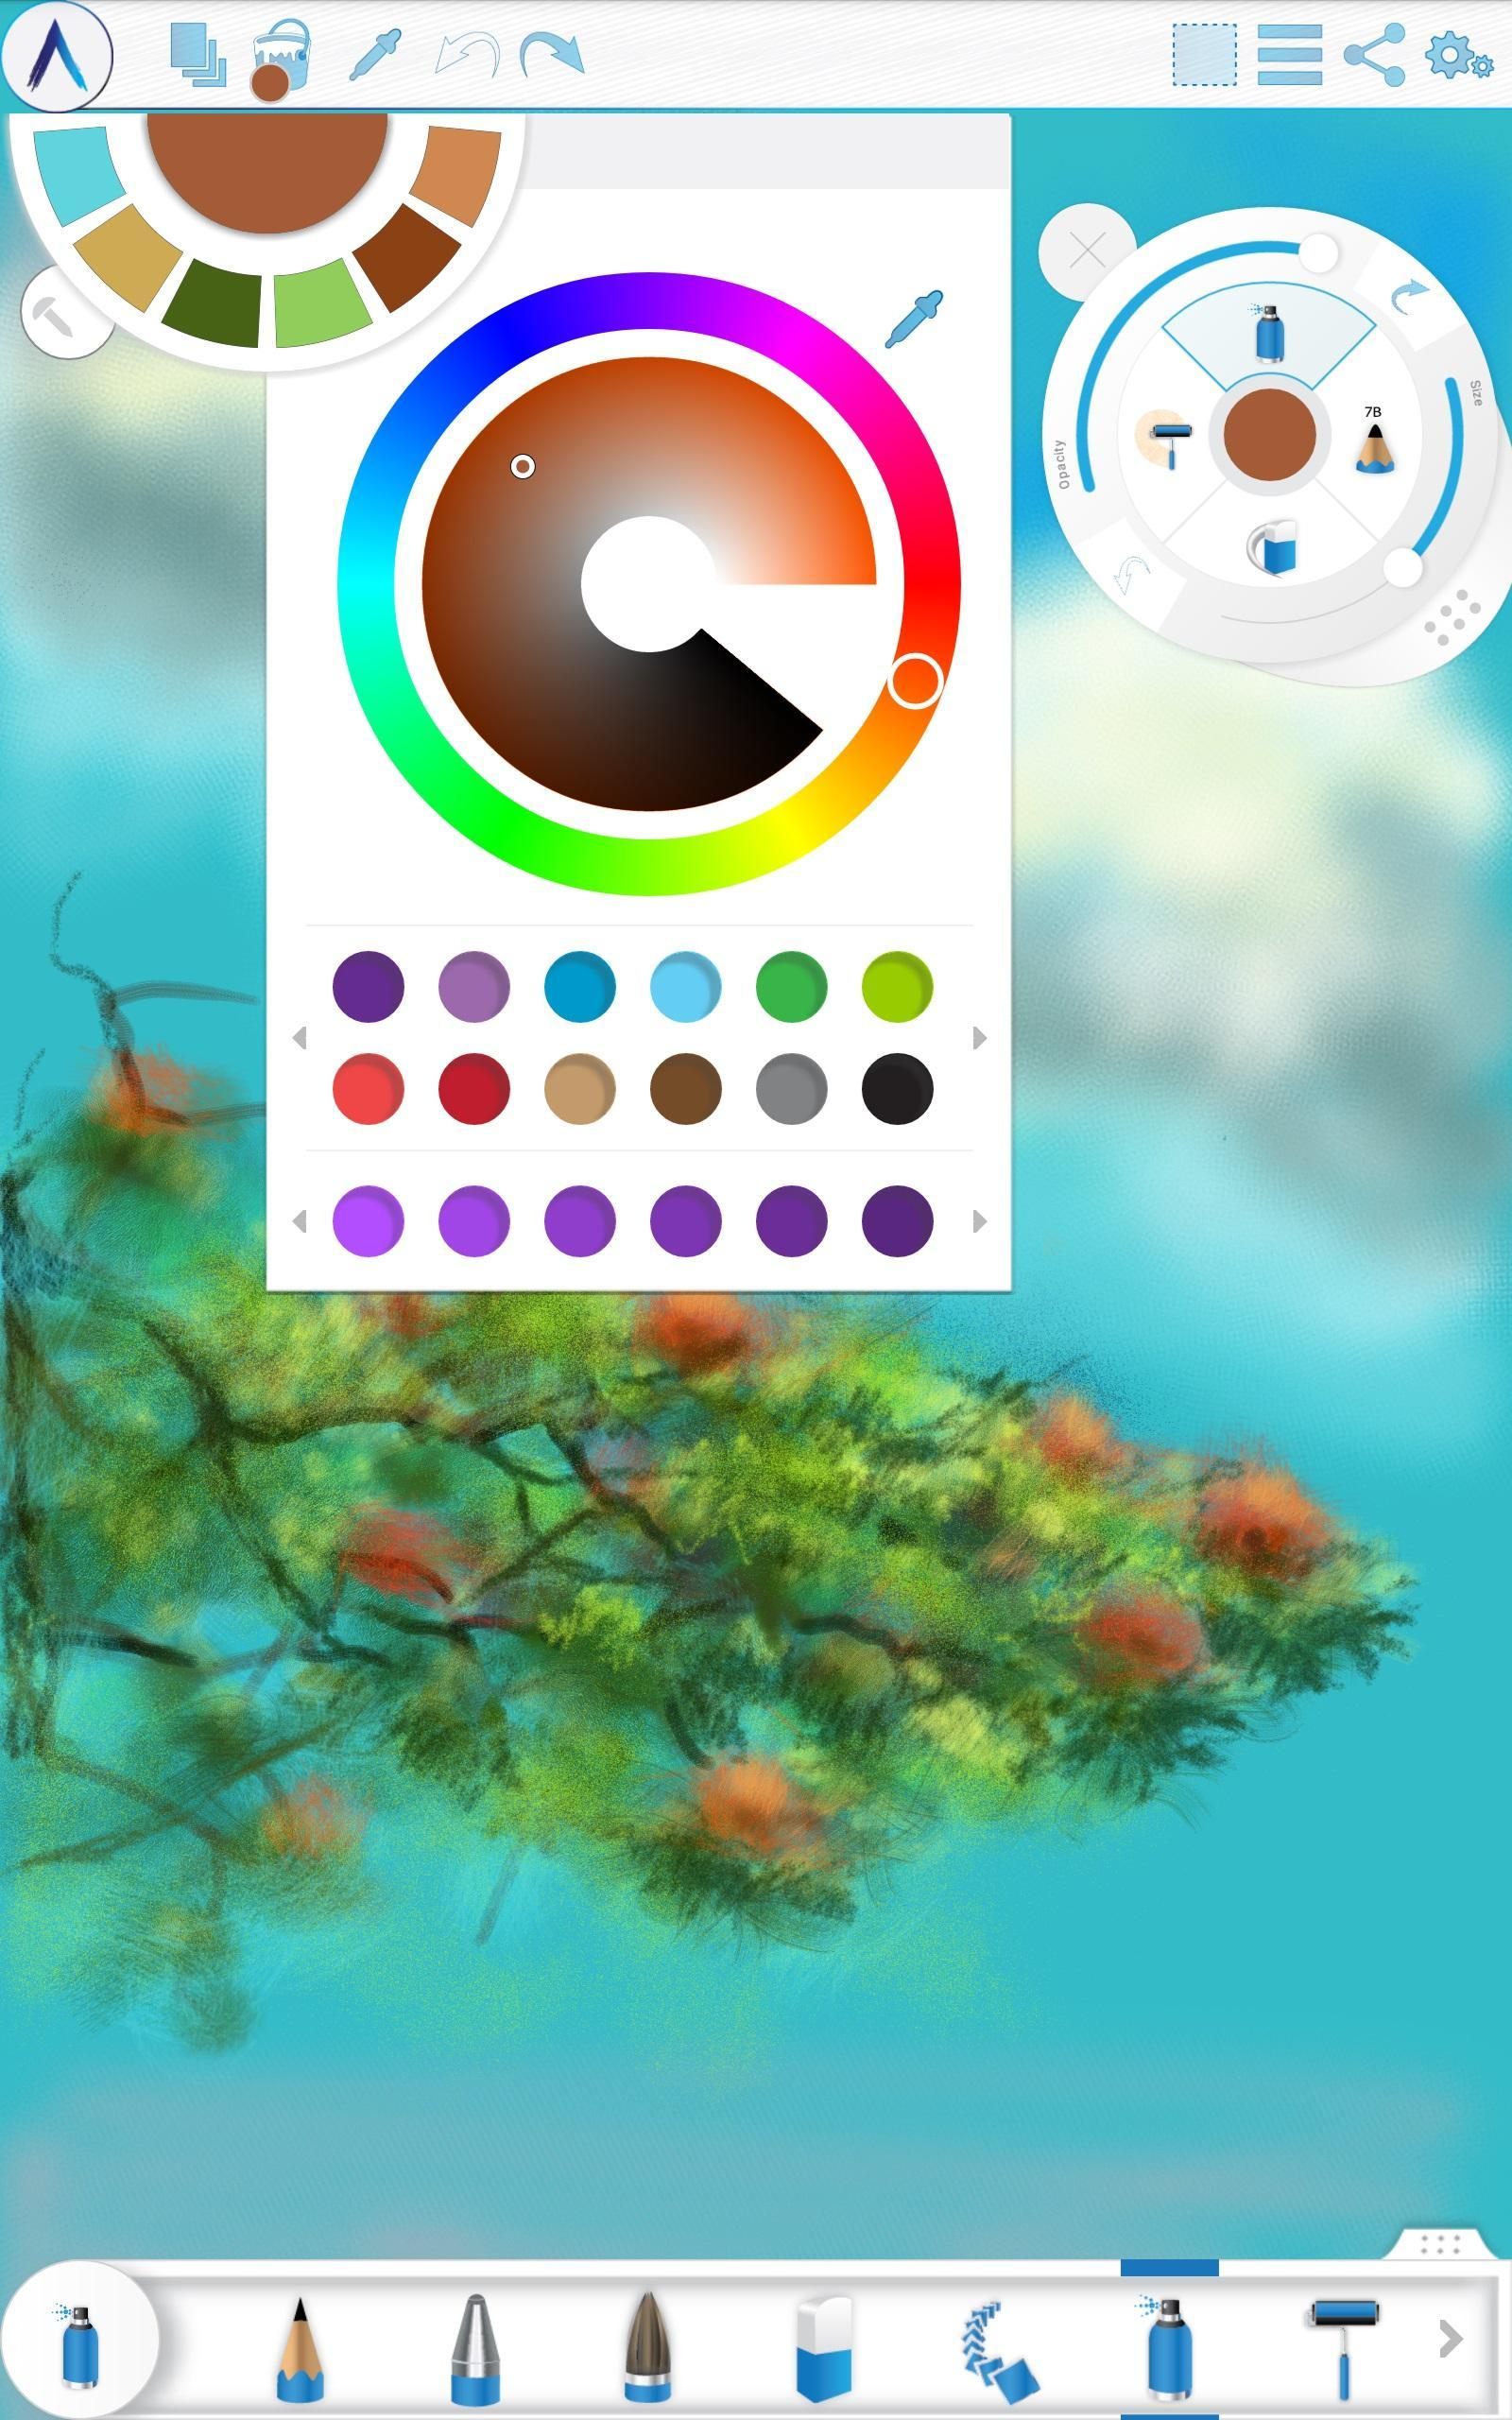 Artecture Draw, Sketch, Paint 5.2.0.4 Screenshot 11